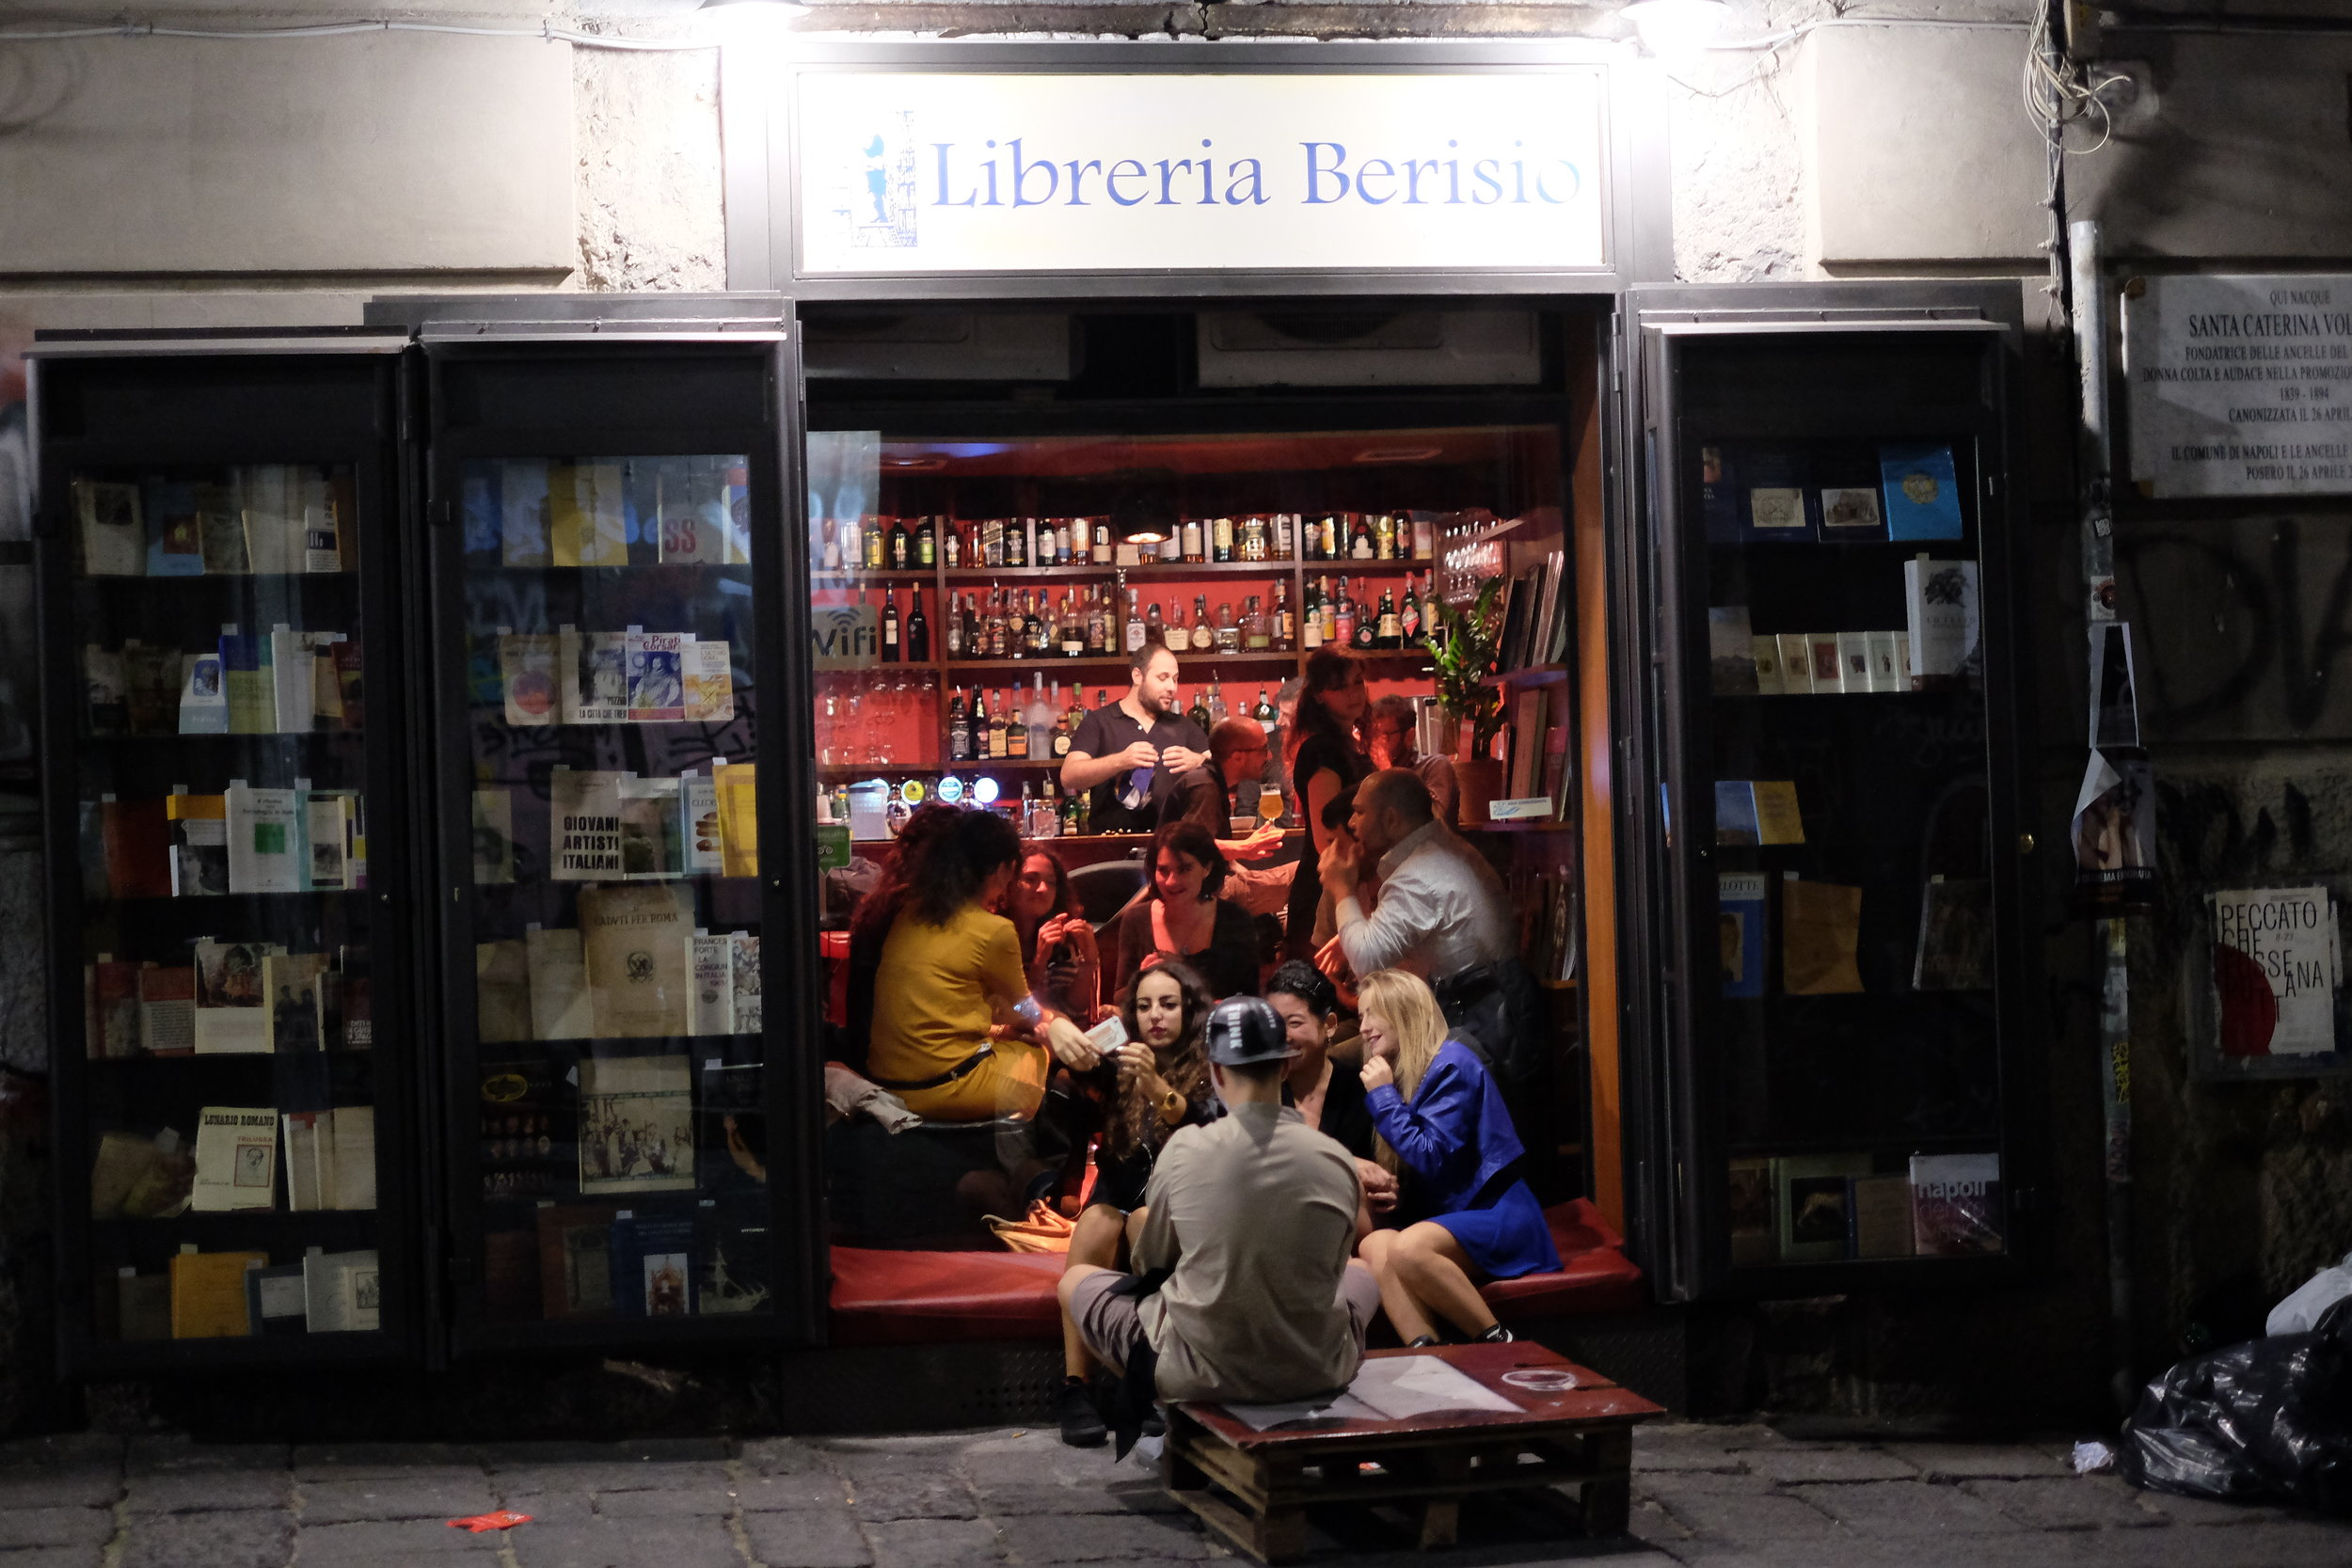 Another book shop/bar Libreria Berisio,  Via Port'Alba, 28, 80134 Napoli.